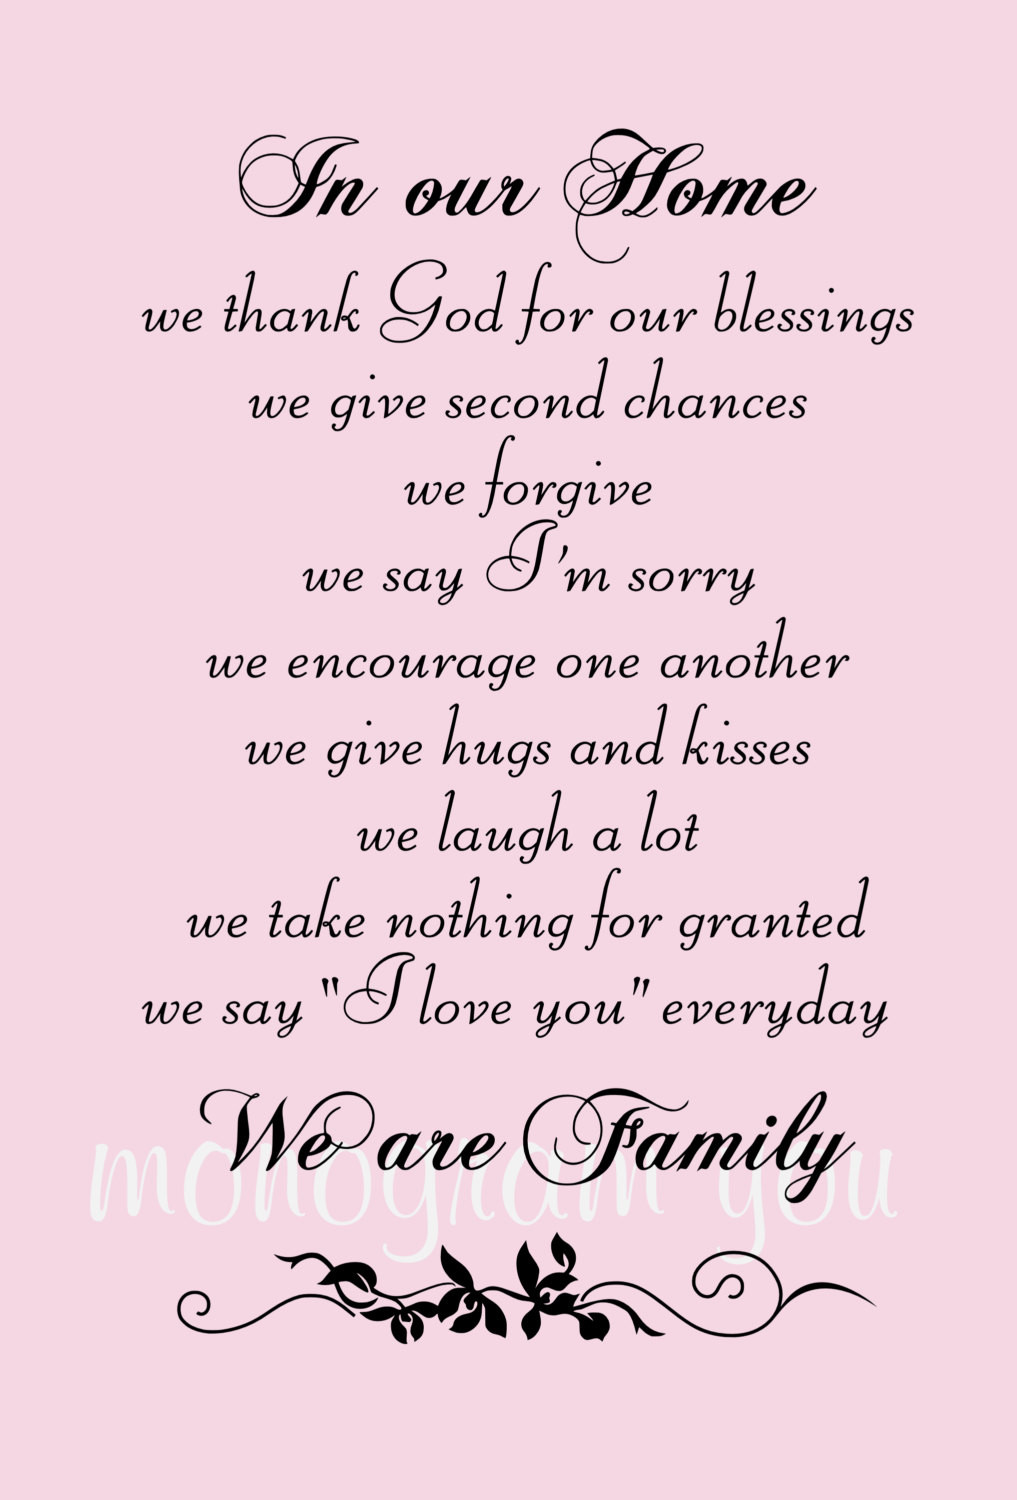 Second Family Quotes  Family Wall Decal Quote In Our Home we thank God for our